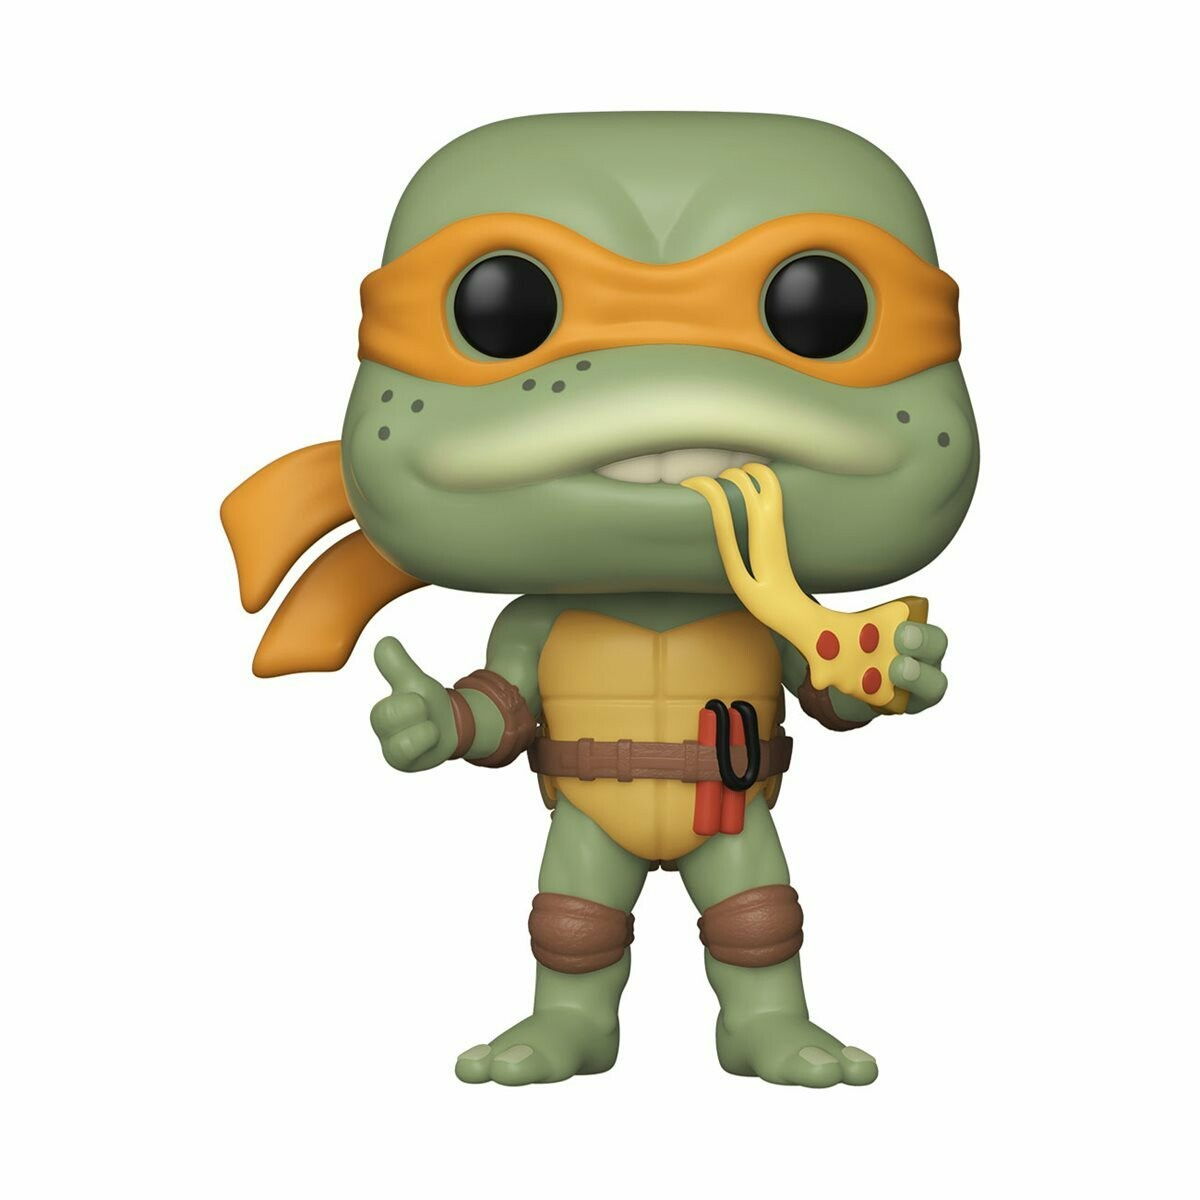 Funko Teenage Mutant Ninja Turtles - Michelangelo Pop! Vinyl Figure